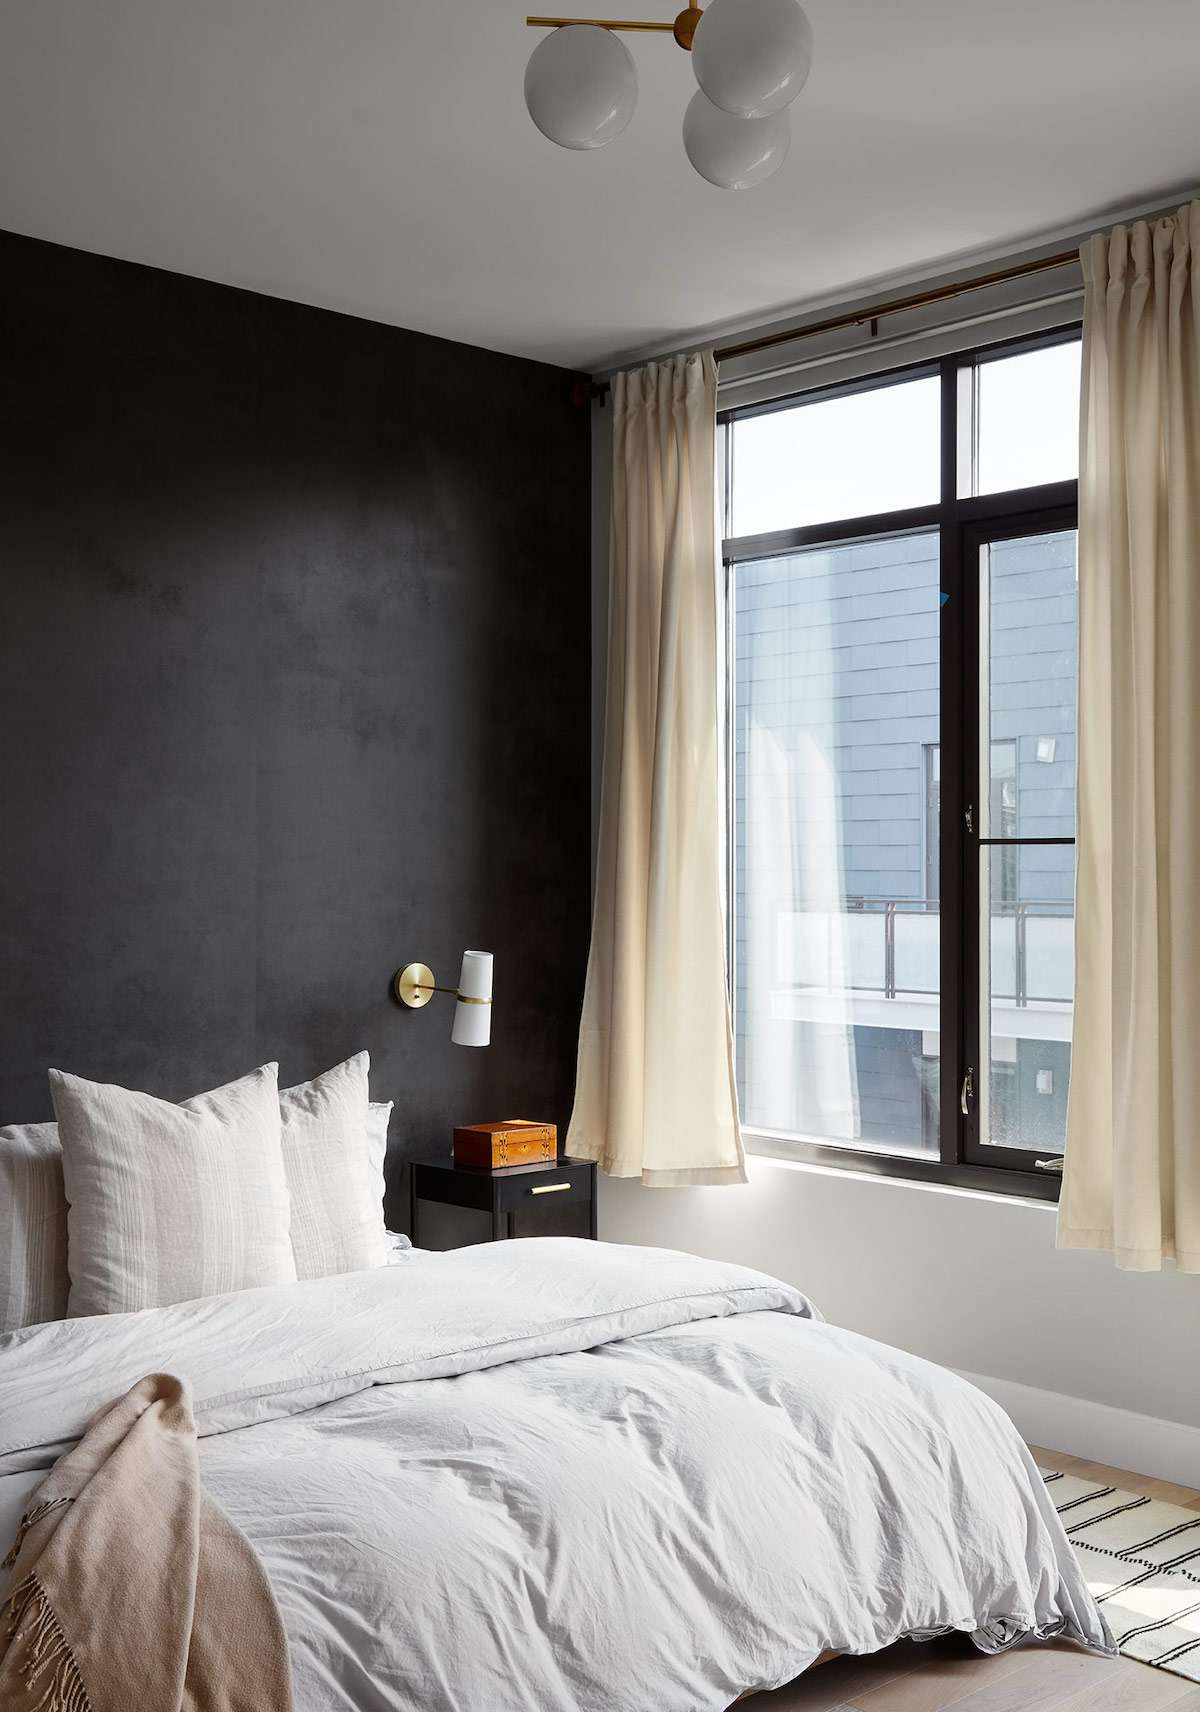 A dark bedroom with short curtains